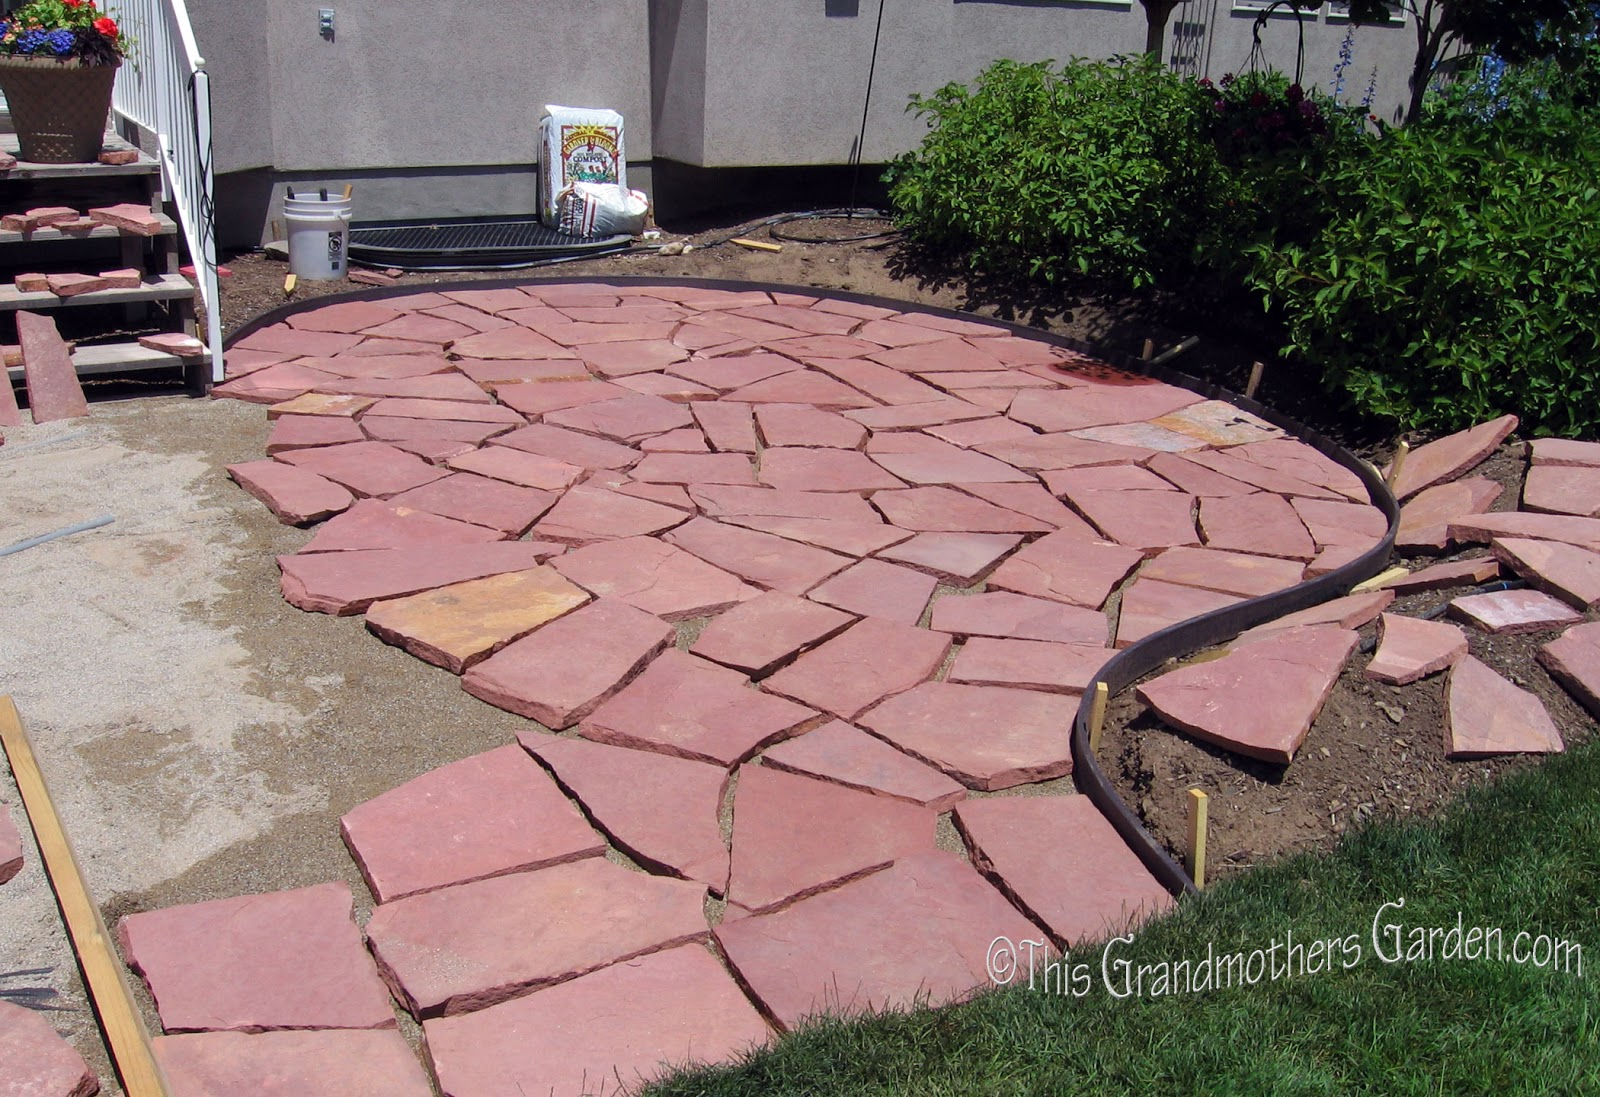 Flagstone Patio With Stone : This grandmother s garden a giant puzzle part two of our